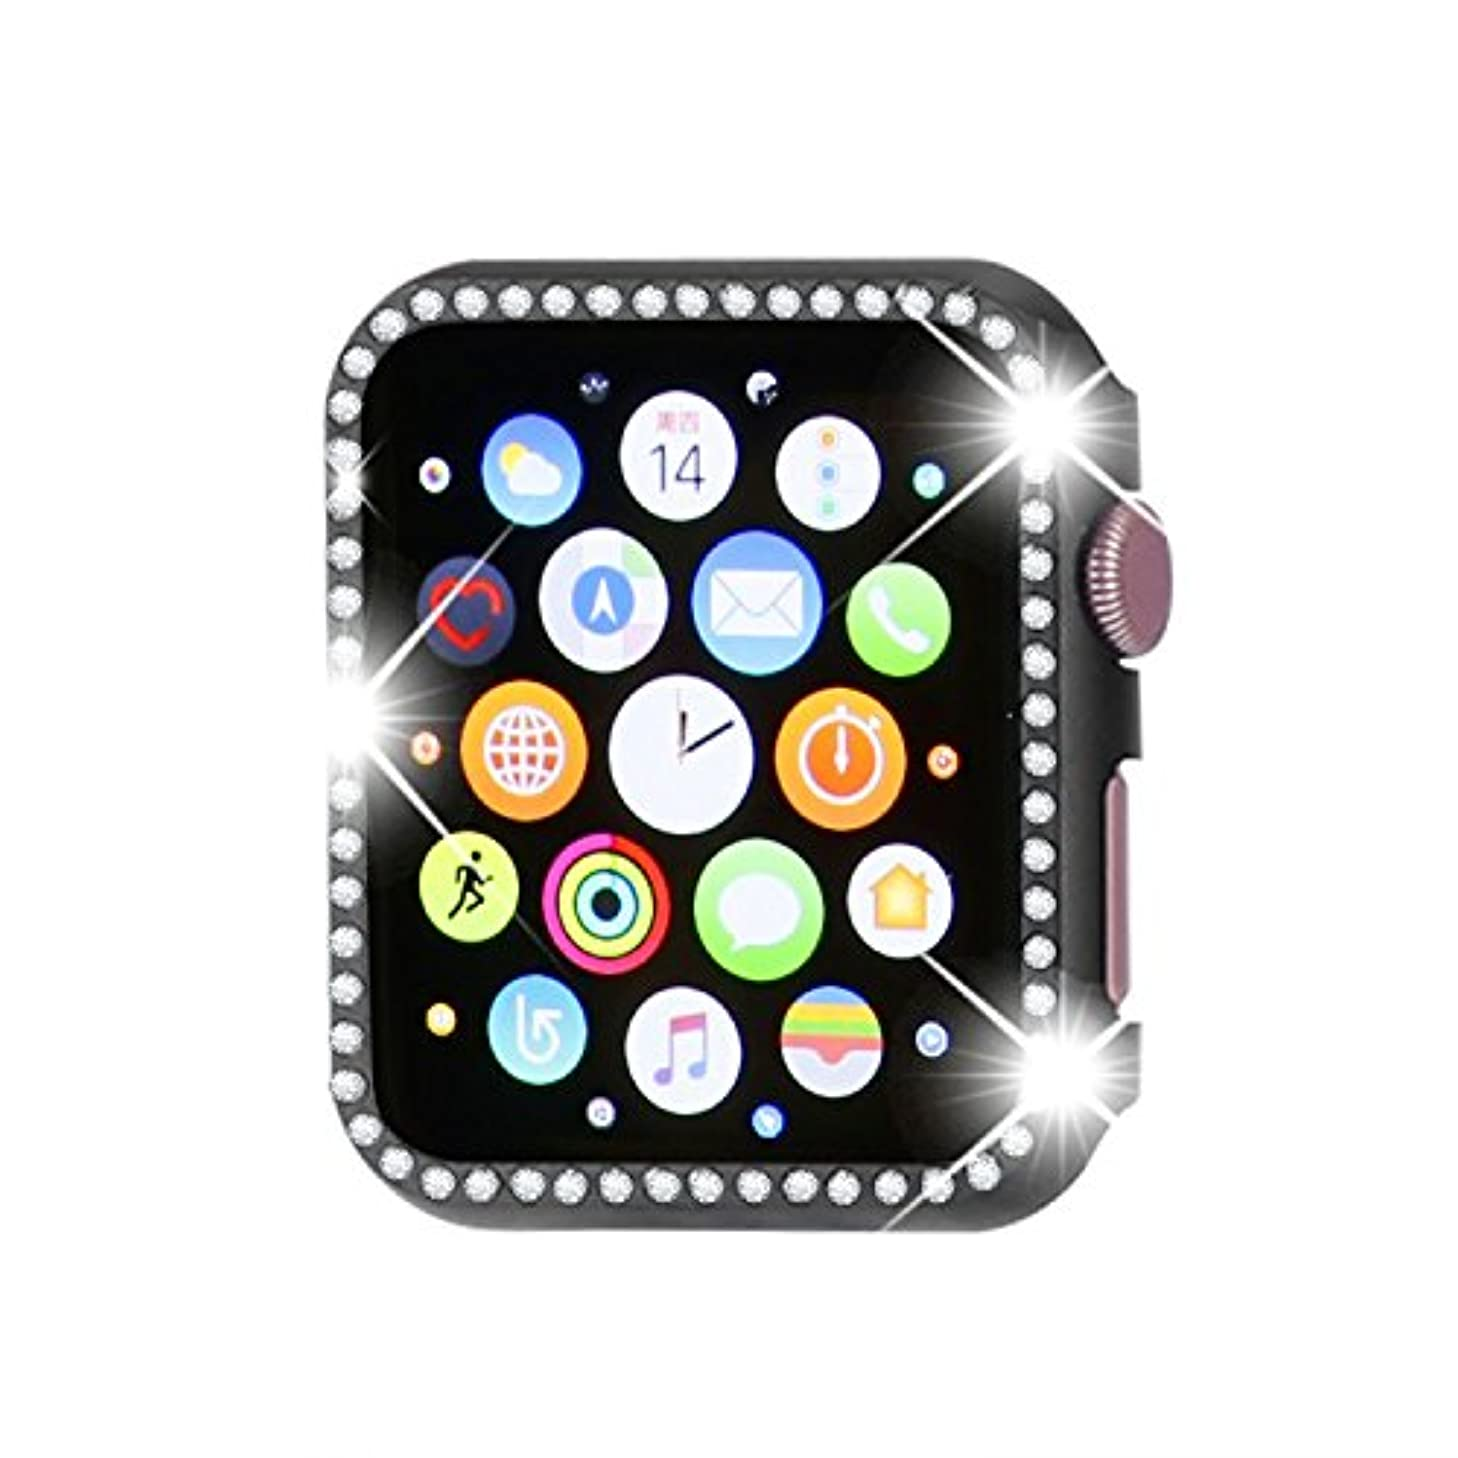 Henstar Compatible with Apple Watch Case 42mm,Compatible with iWatch Face Bling Crystal Diamonds Plate Cover Protective Frame Compatible with Apple Watch Series 3/2/1 (Black, 42mm)